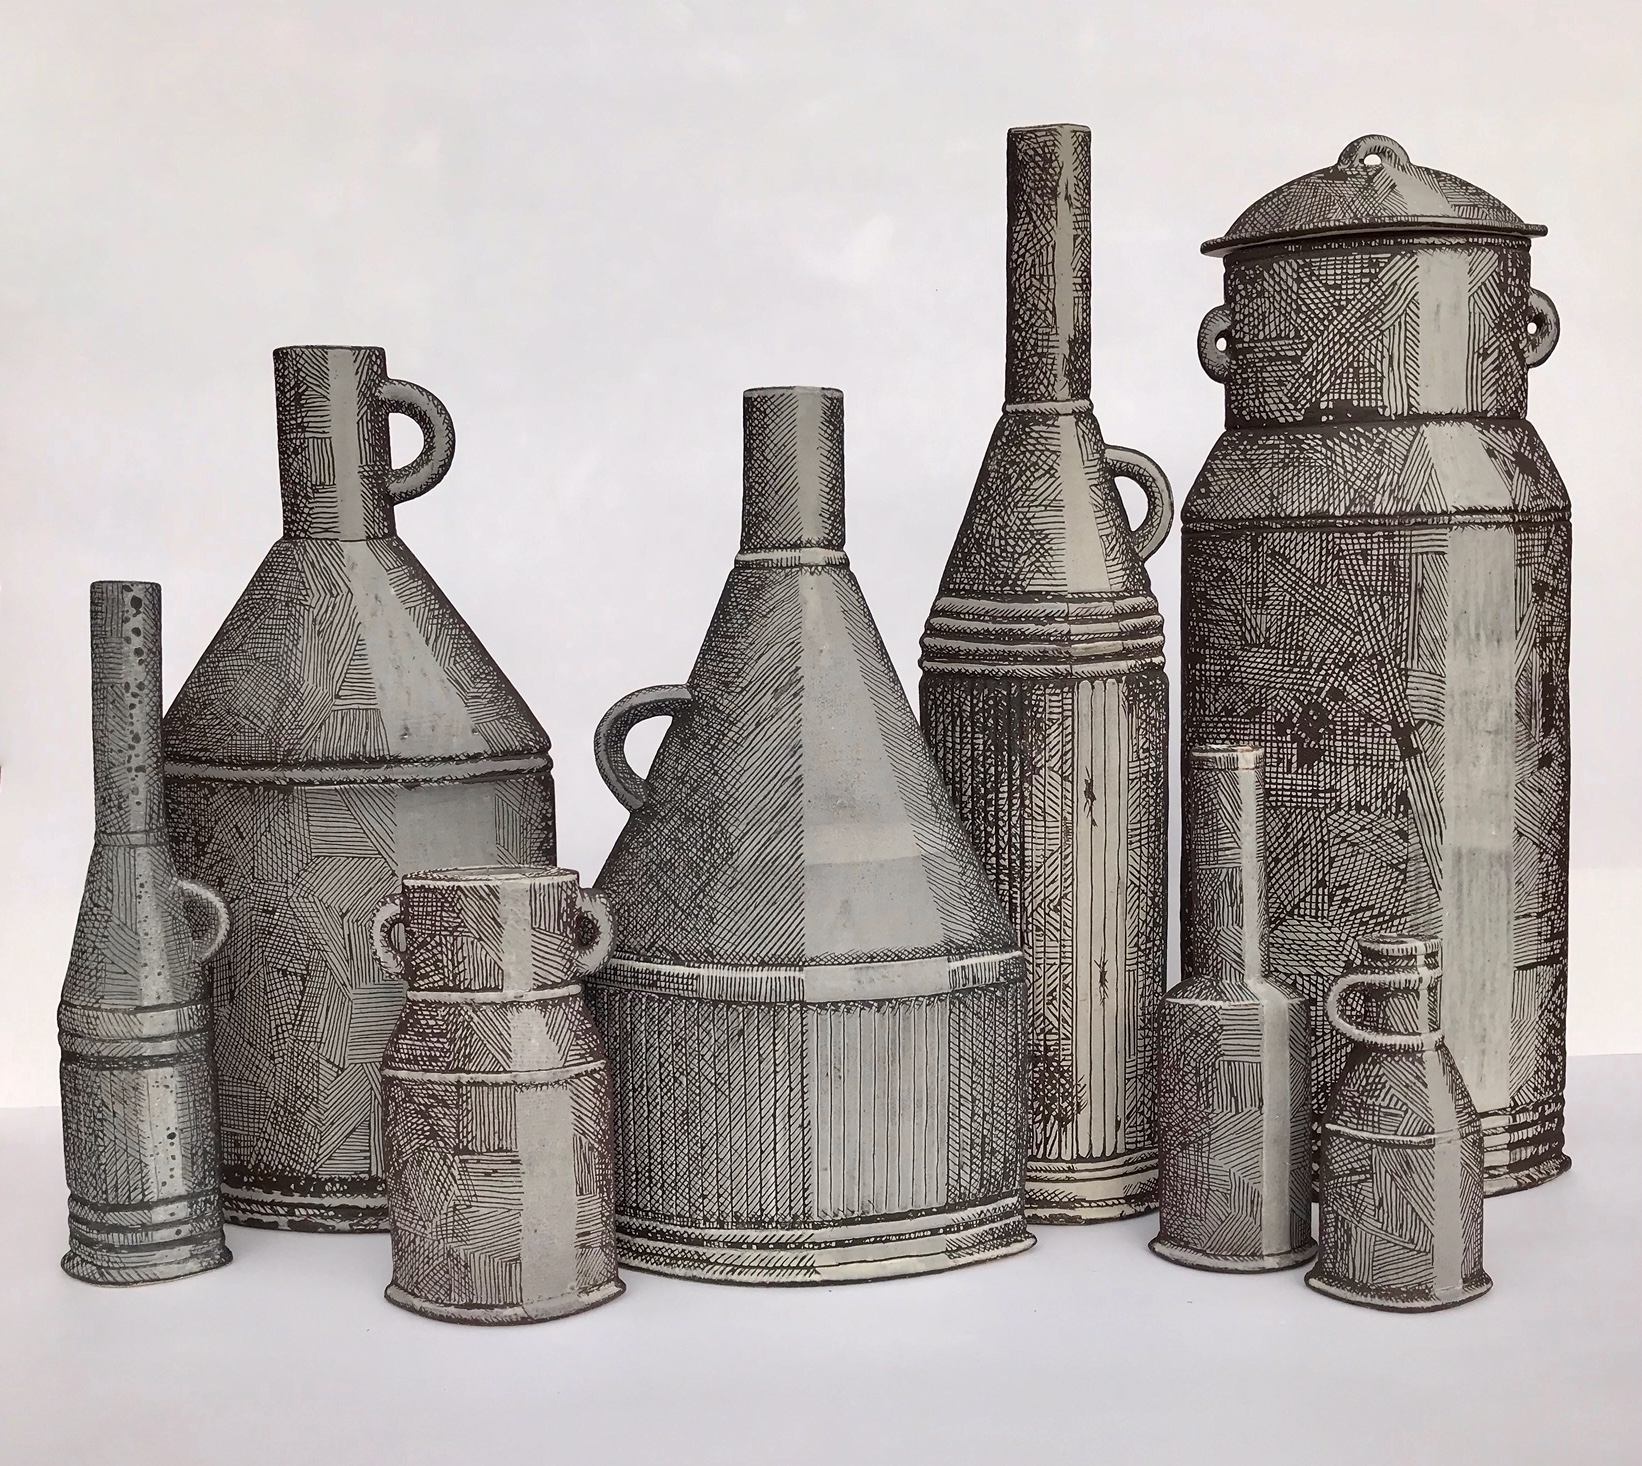 Maggie Williams, Drawn Vessels in Stoneware Clay 2019, White Slip with sgraffitto, Fired to 1240C Largest vessel with Lid - Hight 42cm x Width16cm x Depth 10cm